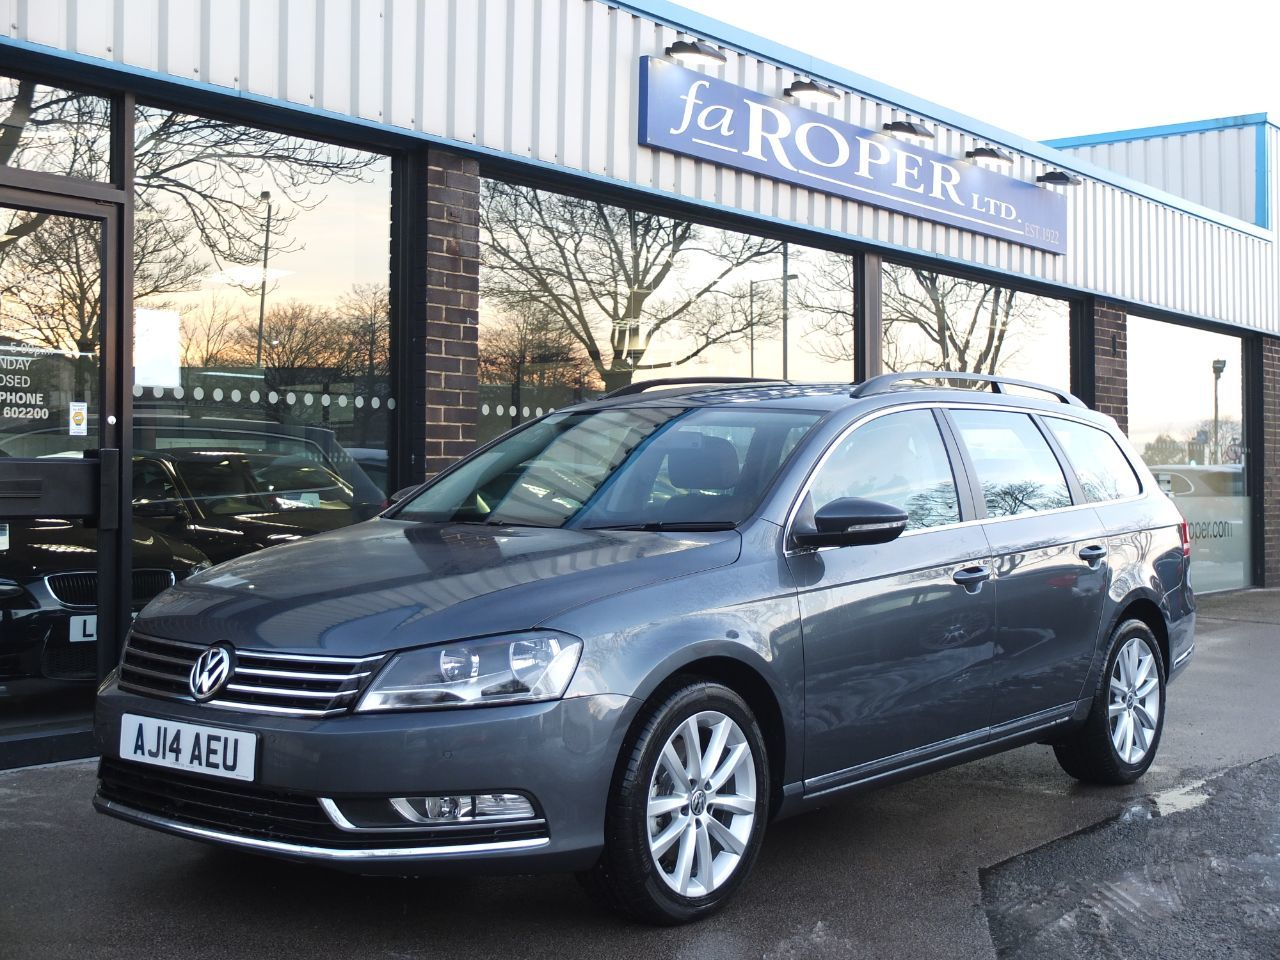 Volkswagen Passat 2.0 TDI Bluemotion Tech Executive Estate Estate Diesel Island Grey MetallicVolkswagen Passat 2.0 TDI Bluemotion Tech Executive Estate Estate Diesel Island Grey Metallic at fa Roper Ltd Bradford